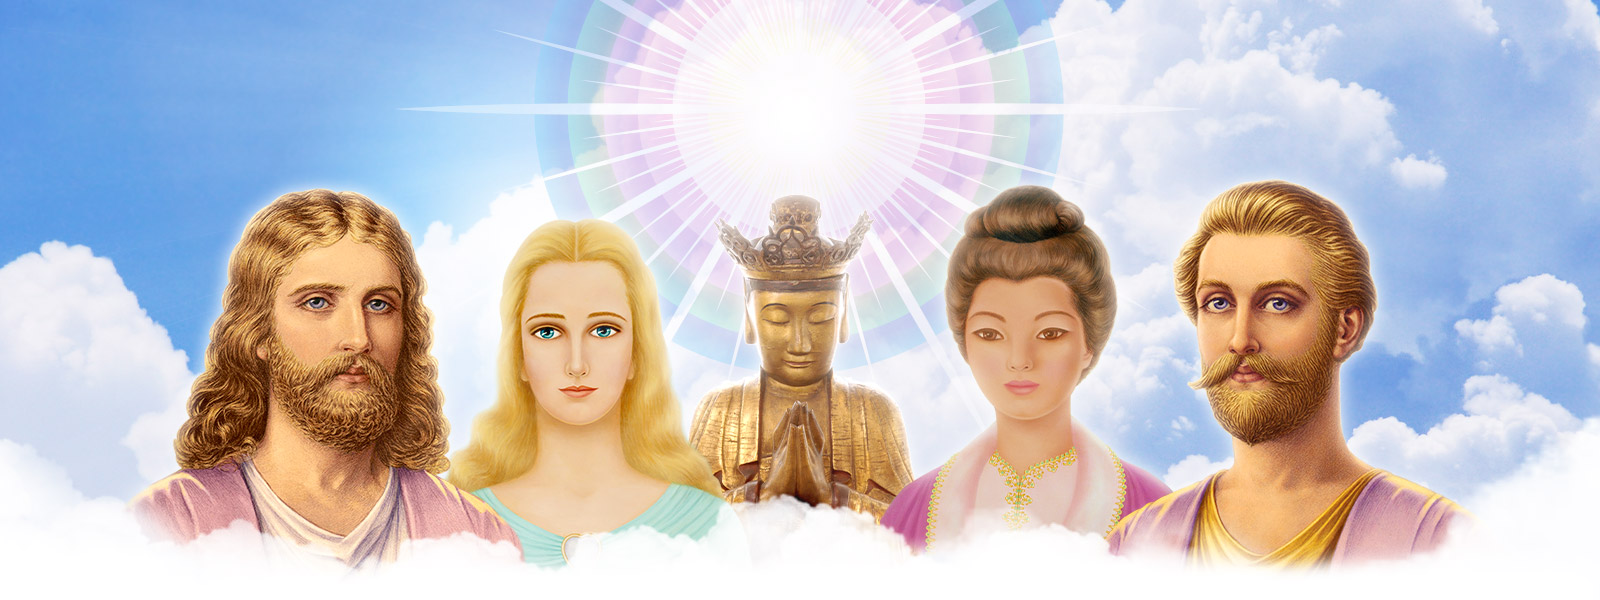 Ascended Masters - Chohans of the Seven Rays